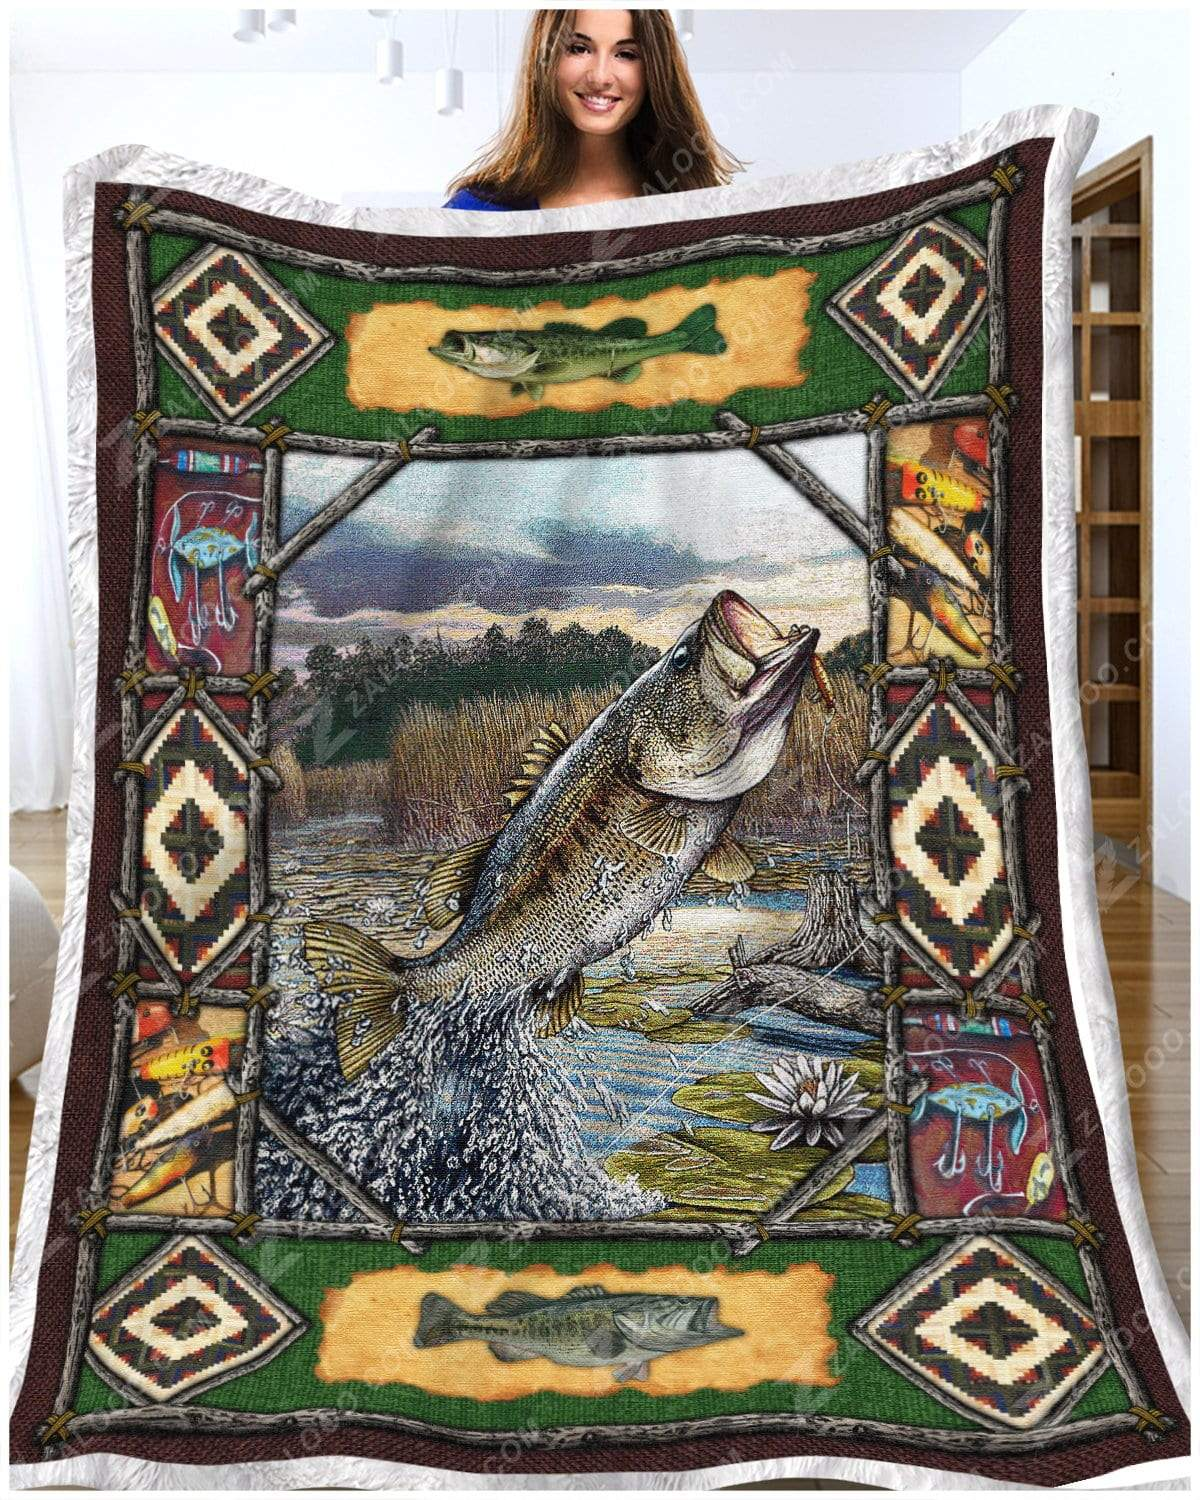 Fishing - Bass Fishing Quilt Blanket EP2182